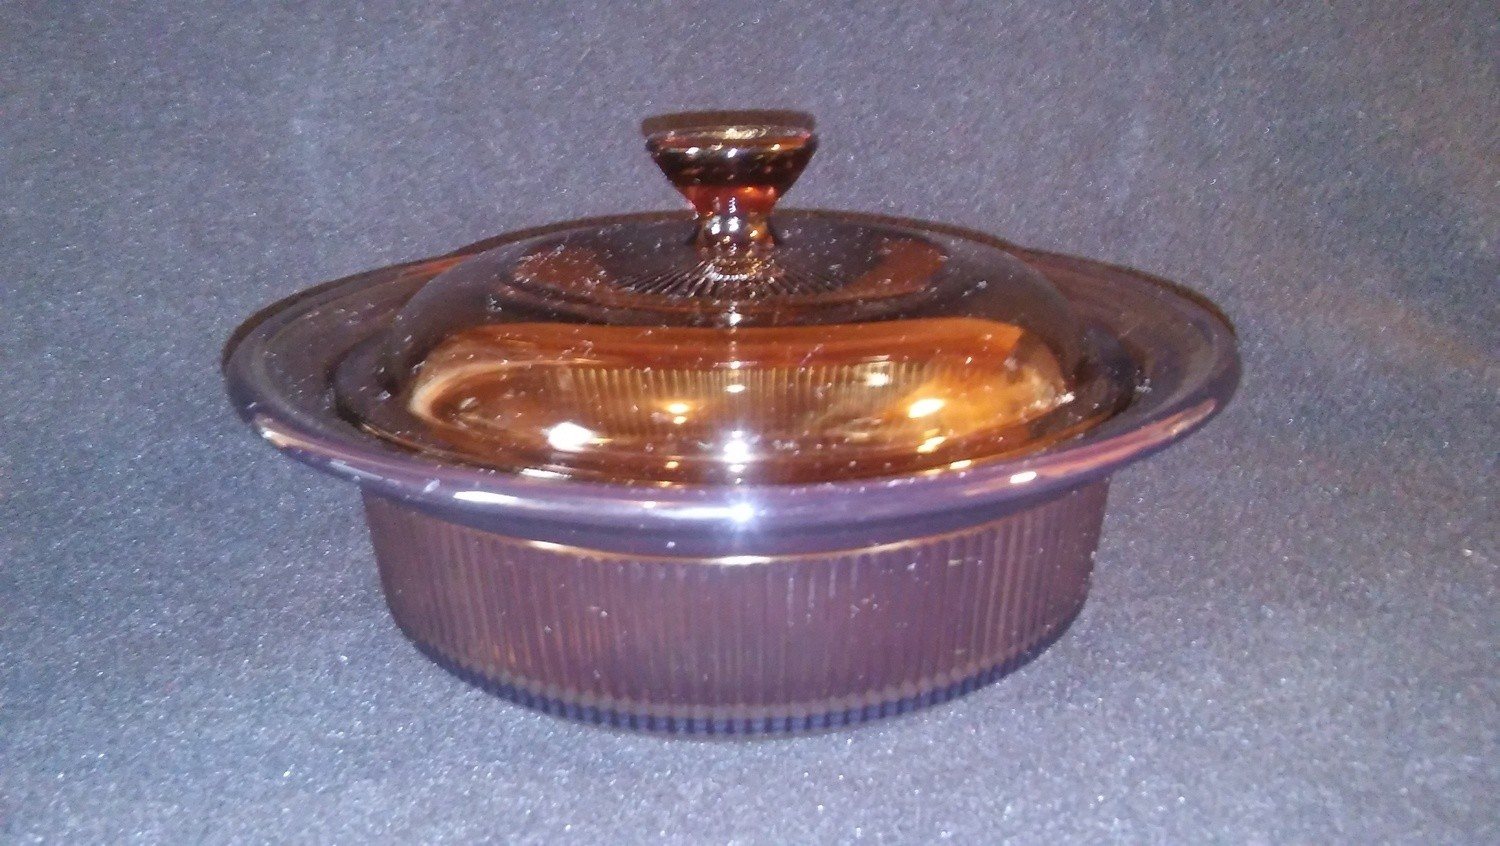 Corning Ware Visions, Microwave Casserole 24 Oz Round with Cover, Amber